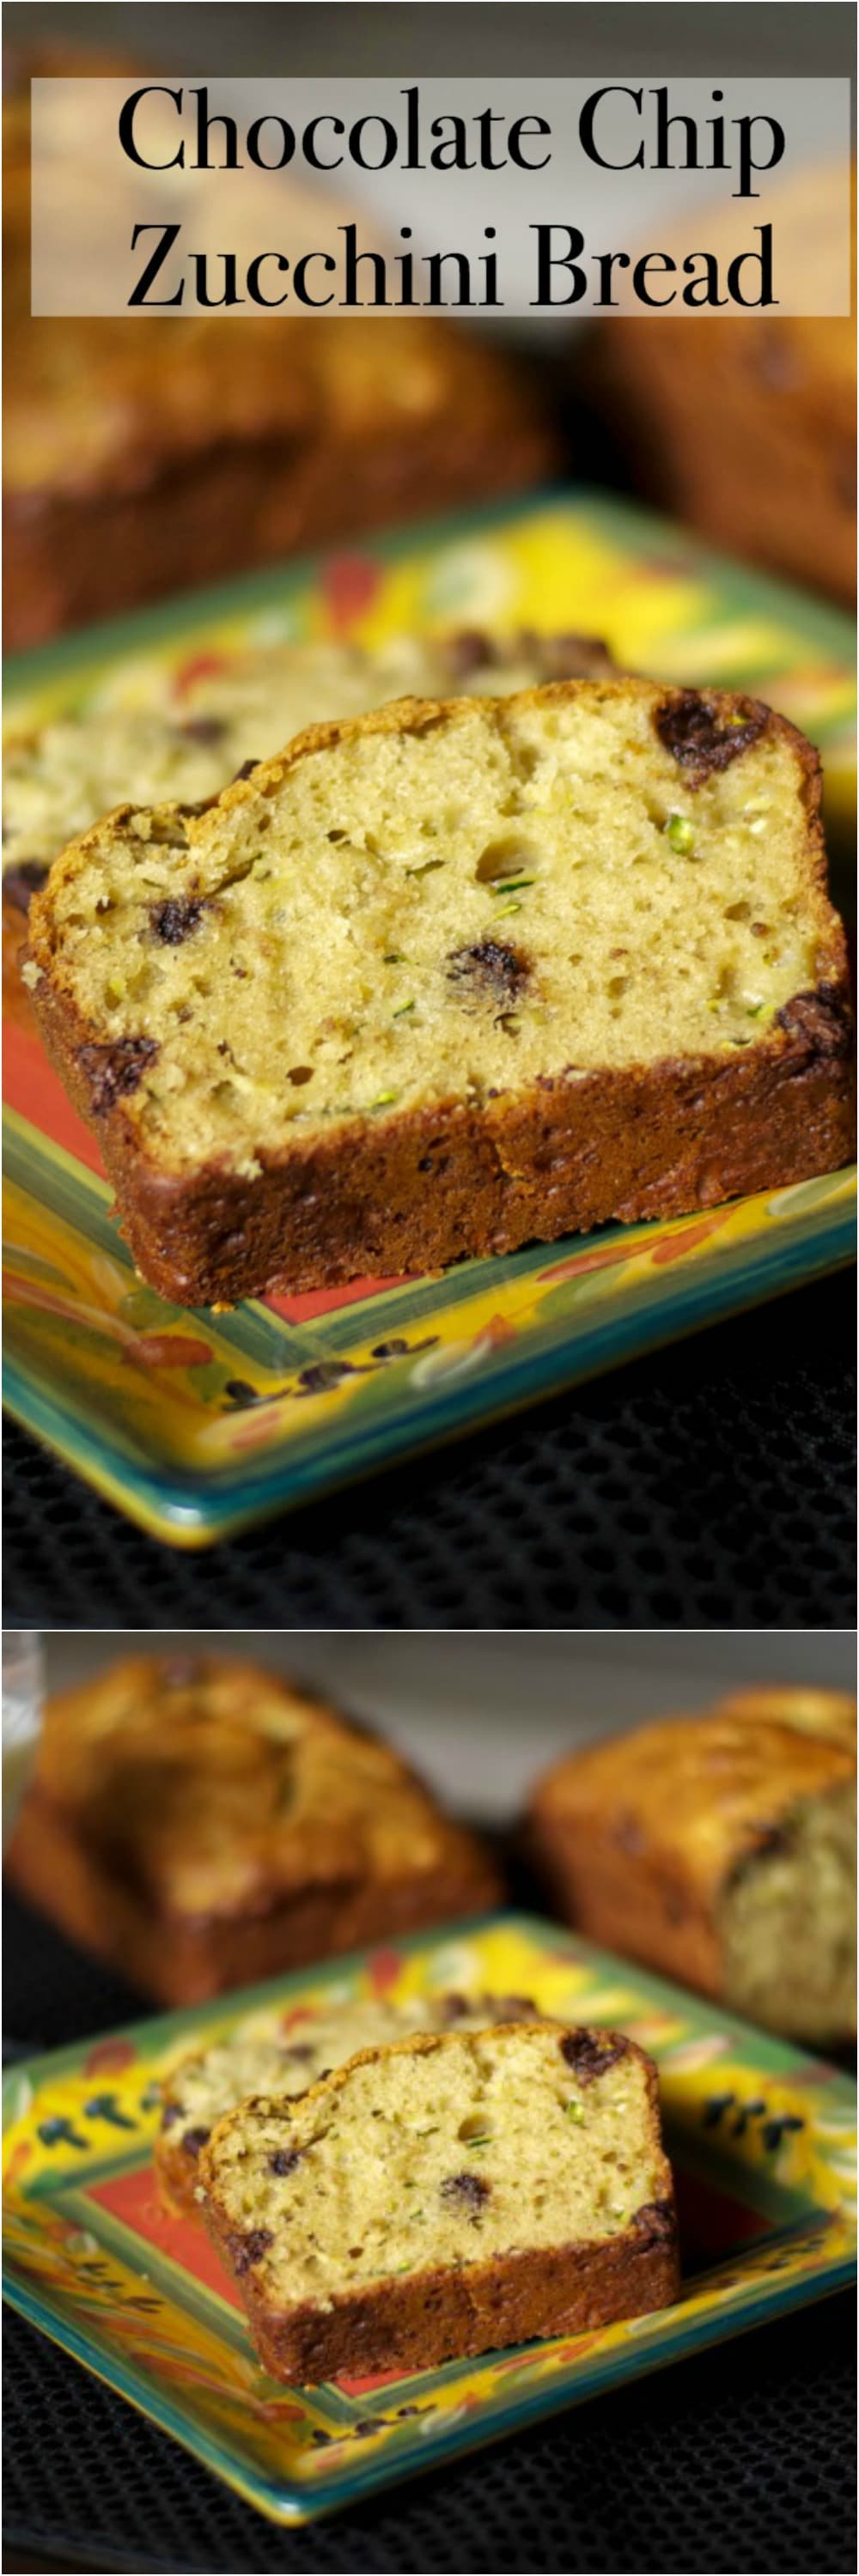 This version of Chocolate Chip Zucchini Bread is lightened up a bit with Greek yogurt and applesauce, but it's loaded with flavor. #zucchini #bread #loafbread #dessert #breakfast